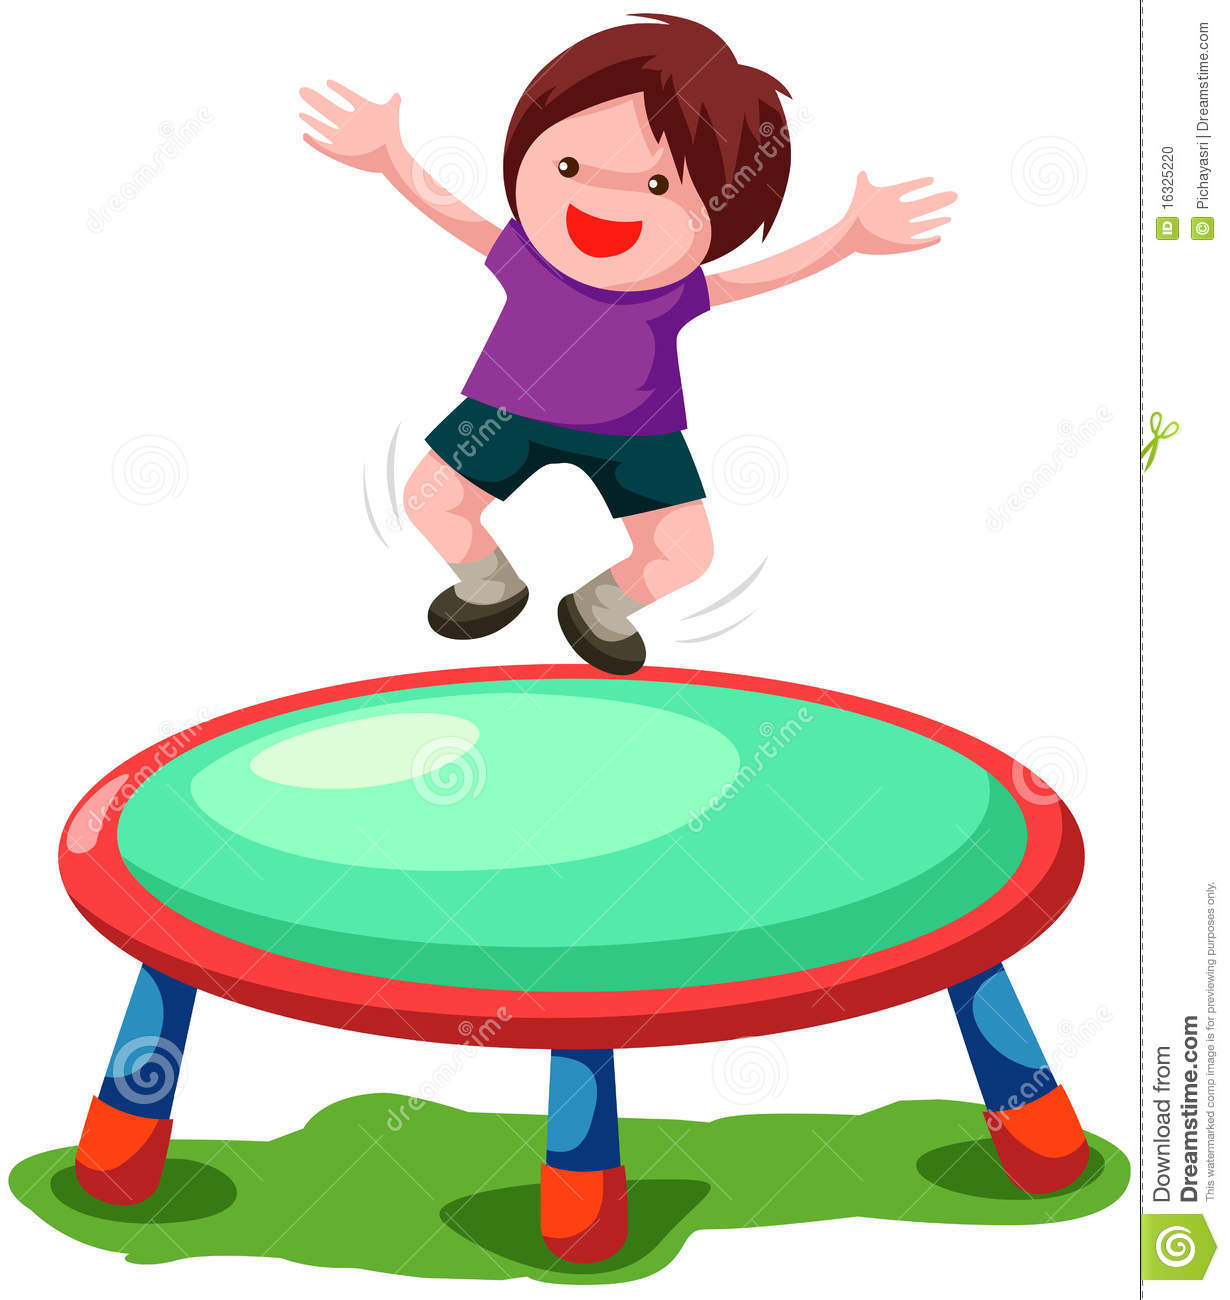 jump trampoline clipart trampoline jumping kxhr6a redneck clipart free black and white redneck clipart free cartoons